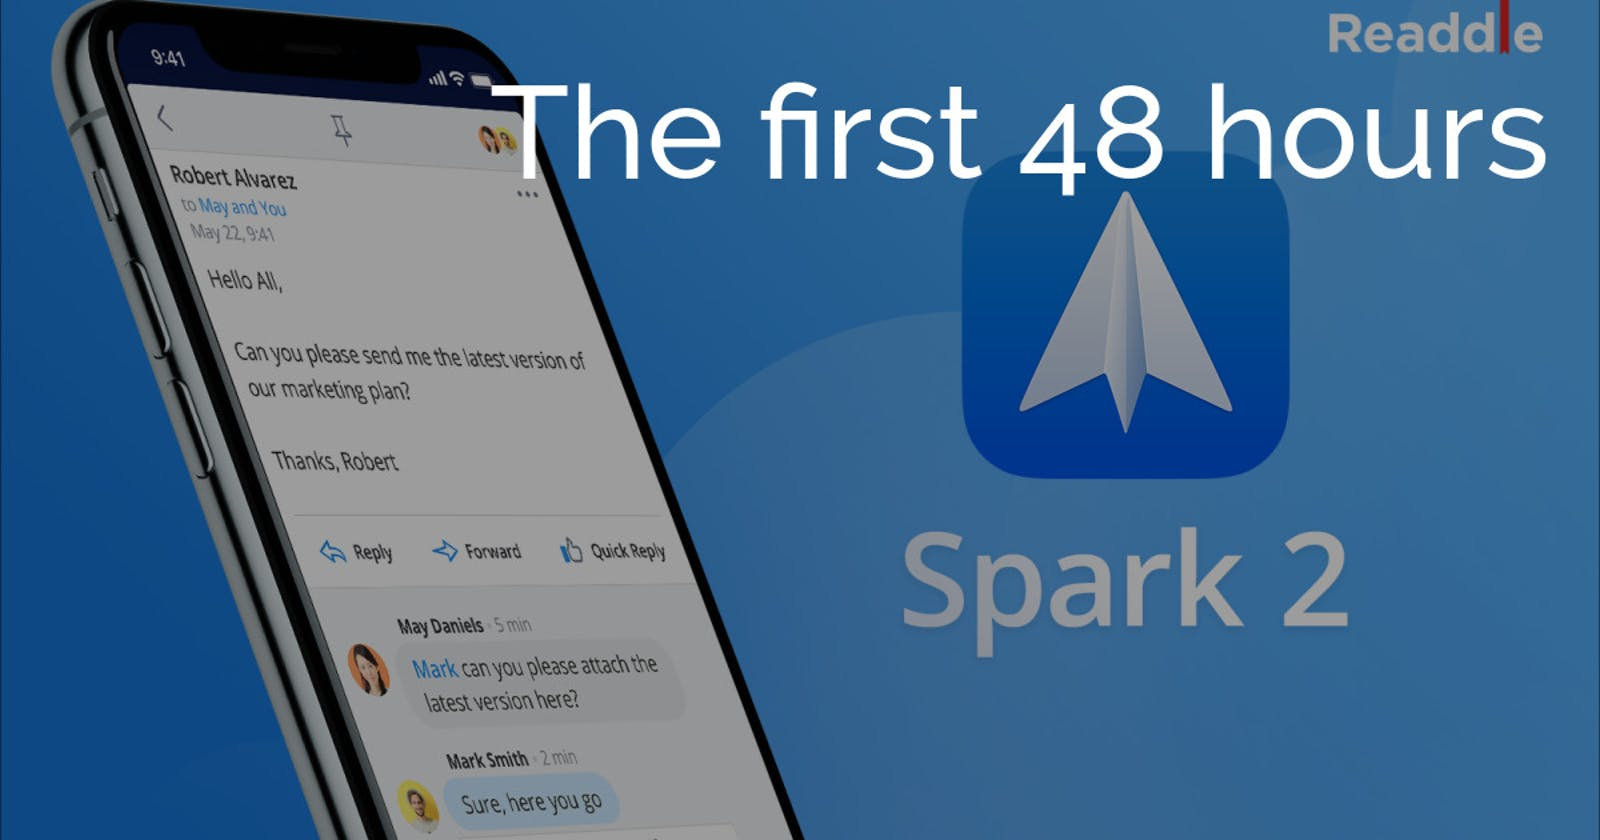 The first 48 hours - Spark Email Client